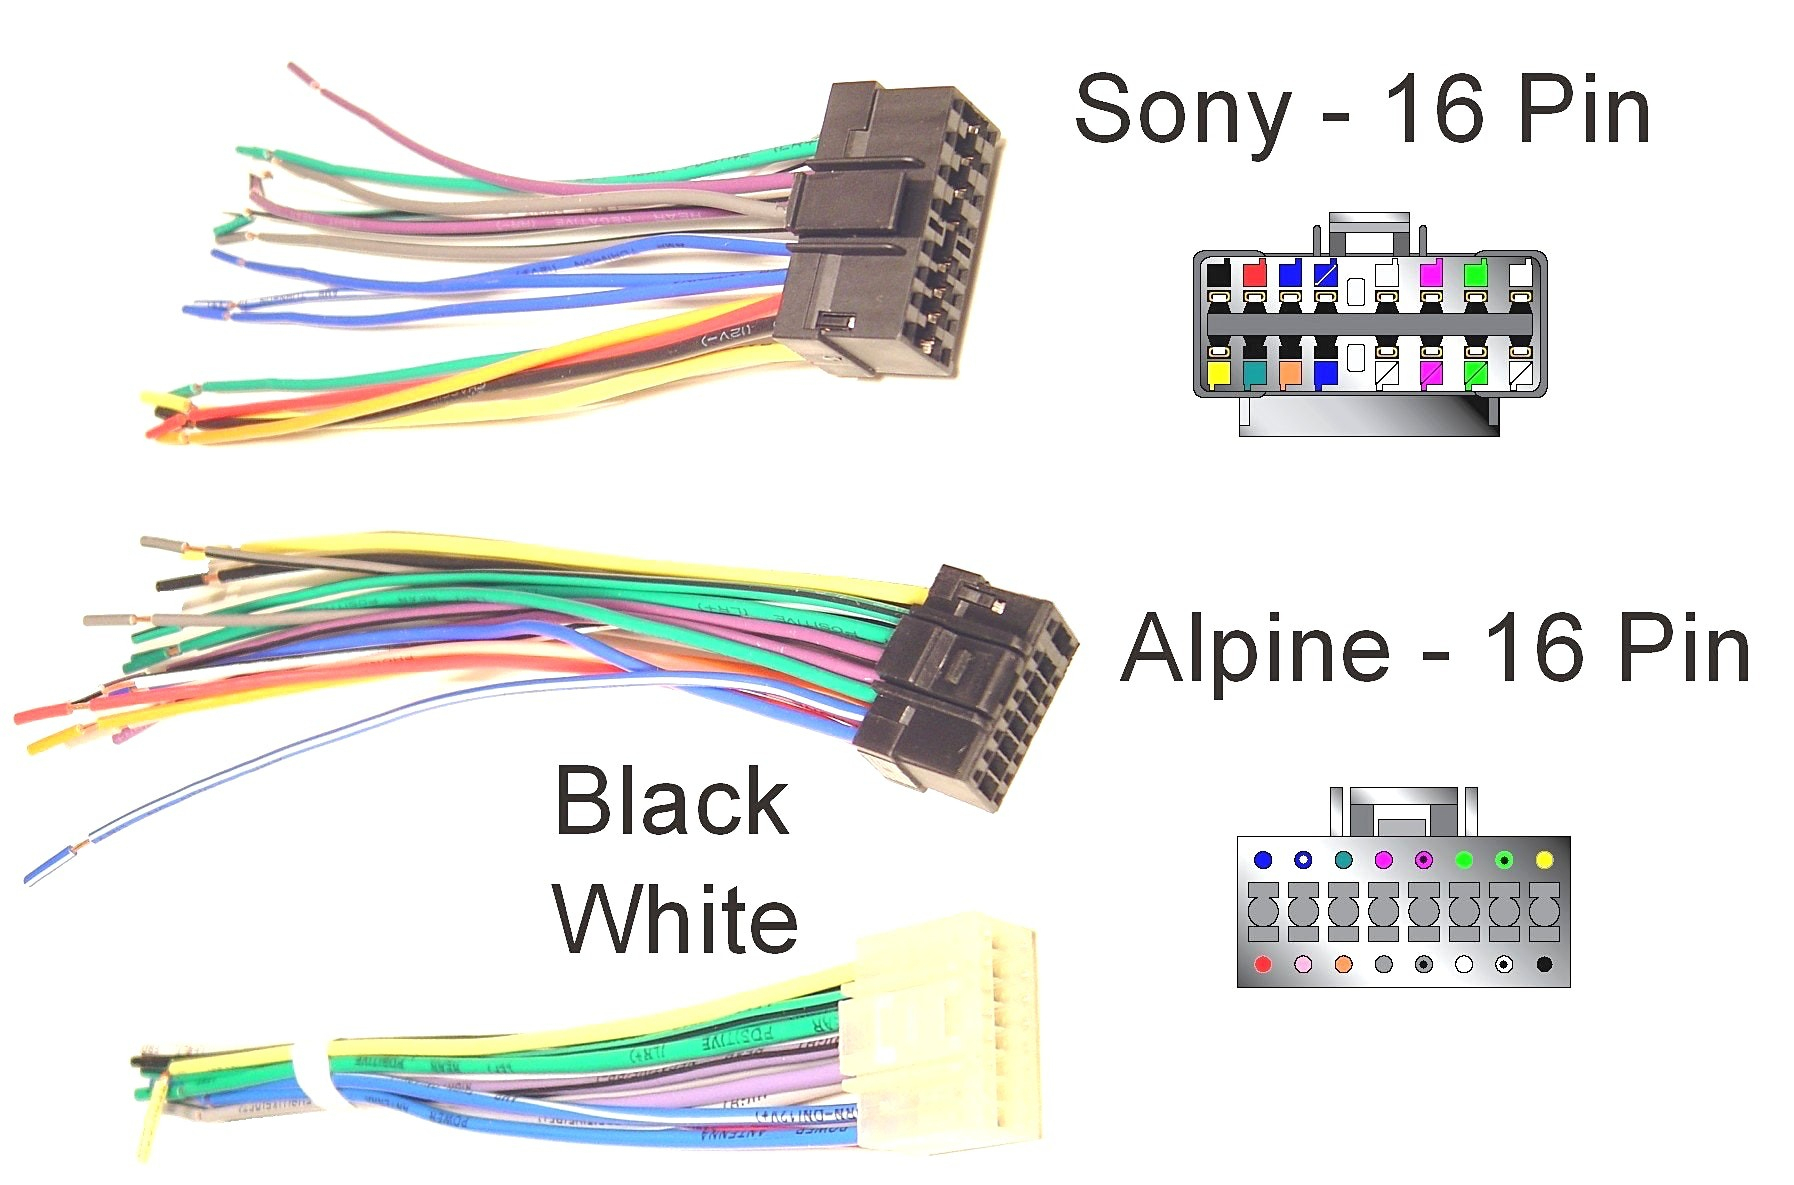 Sony Car Cd Player Wiring Diagram | Wiring Diagram - Sony Xplod Car Stereo Wiring Diagram